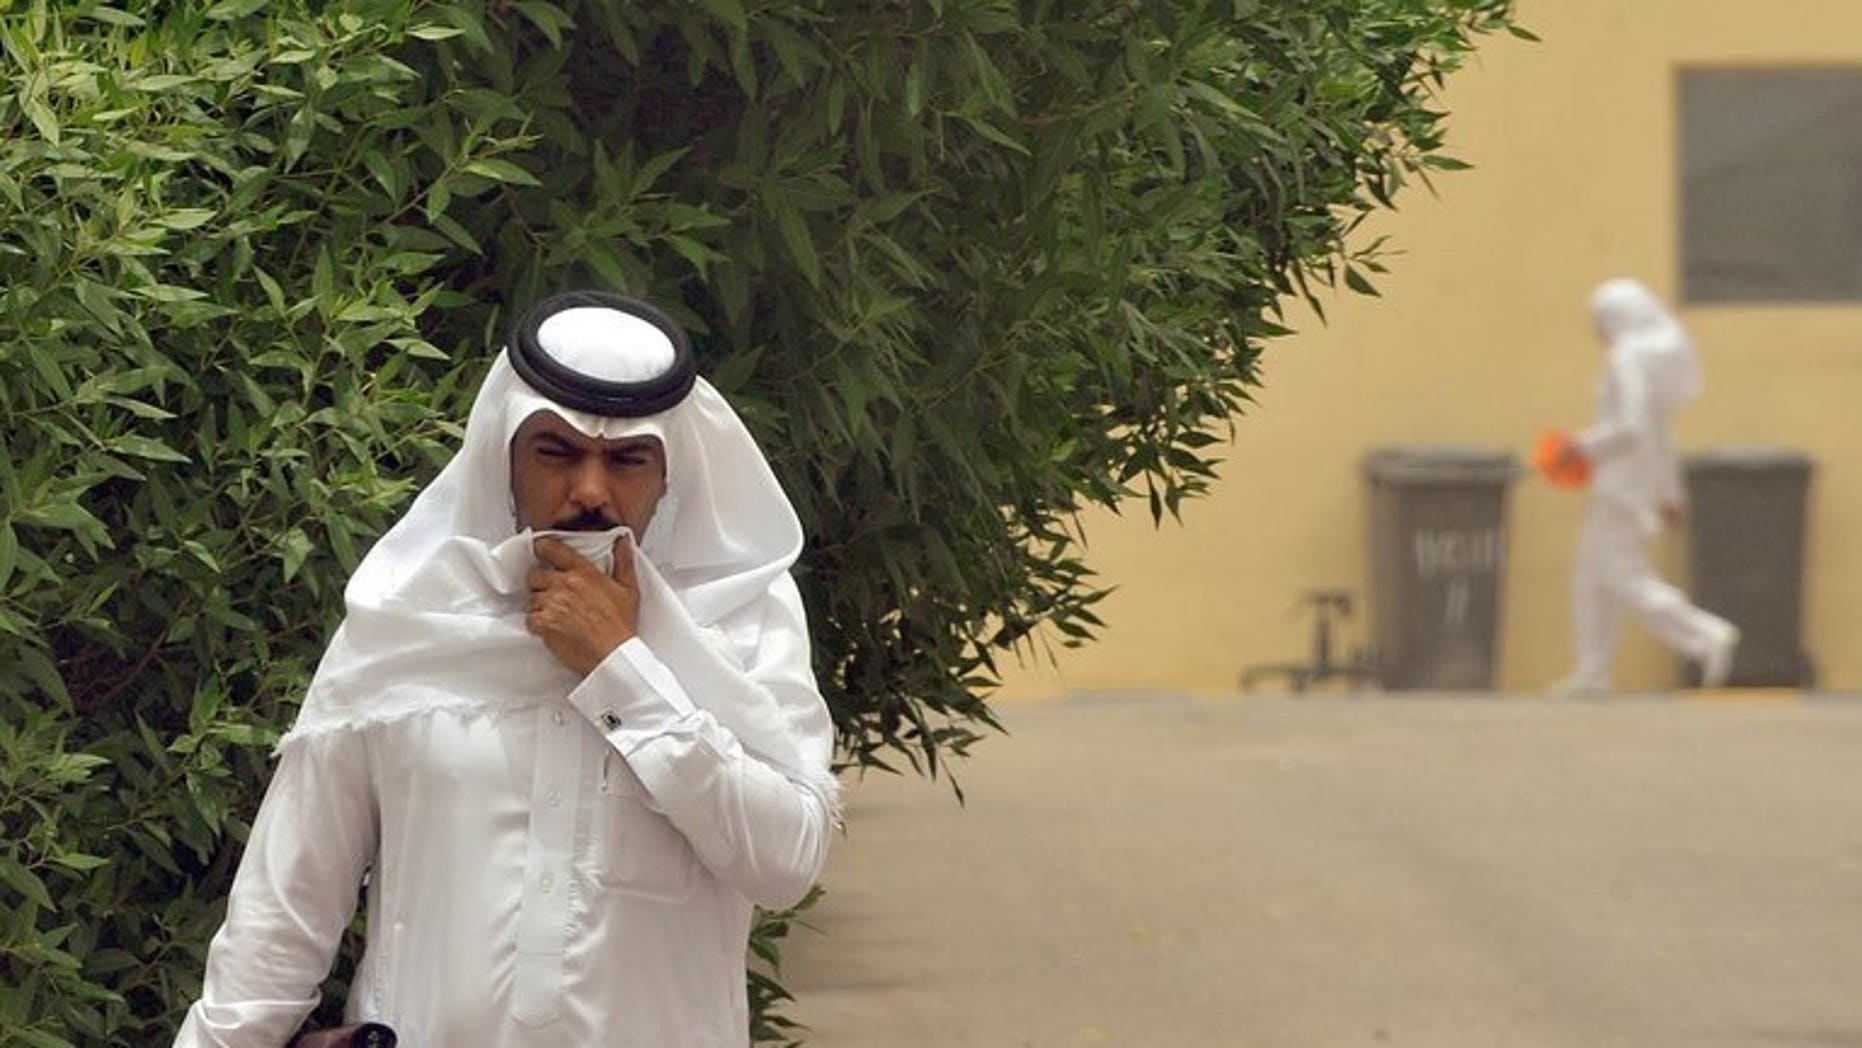 A Saudi man walks toward the King Fahad hospital in the city of Hofuf, east of the Saudi capital Riyadh on June 16, 2013. Six more people, most of them health care workers, have contracted the deadly MERS virus in Saudi Arabia and the United Arab Emirates, the World Health Organization said Thursday.